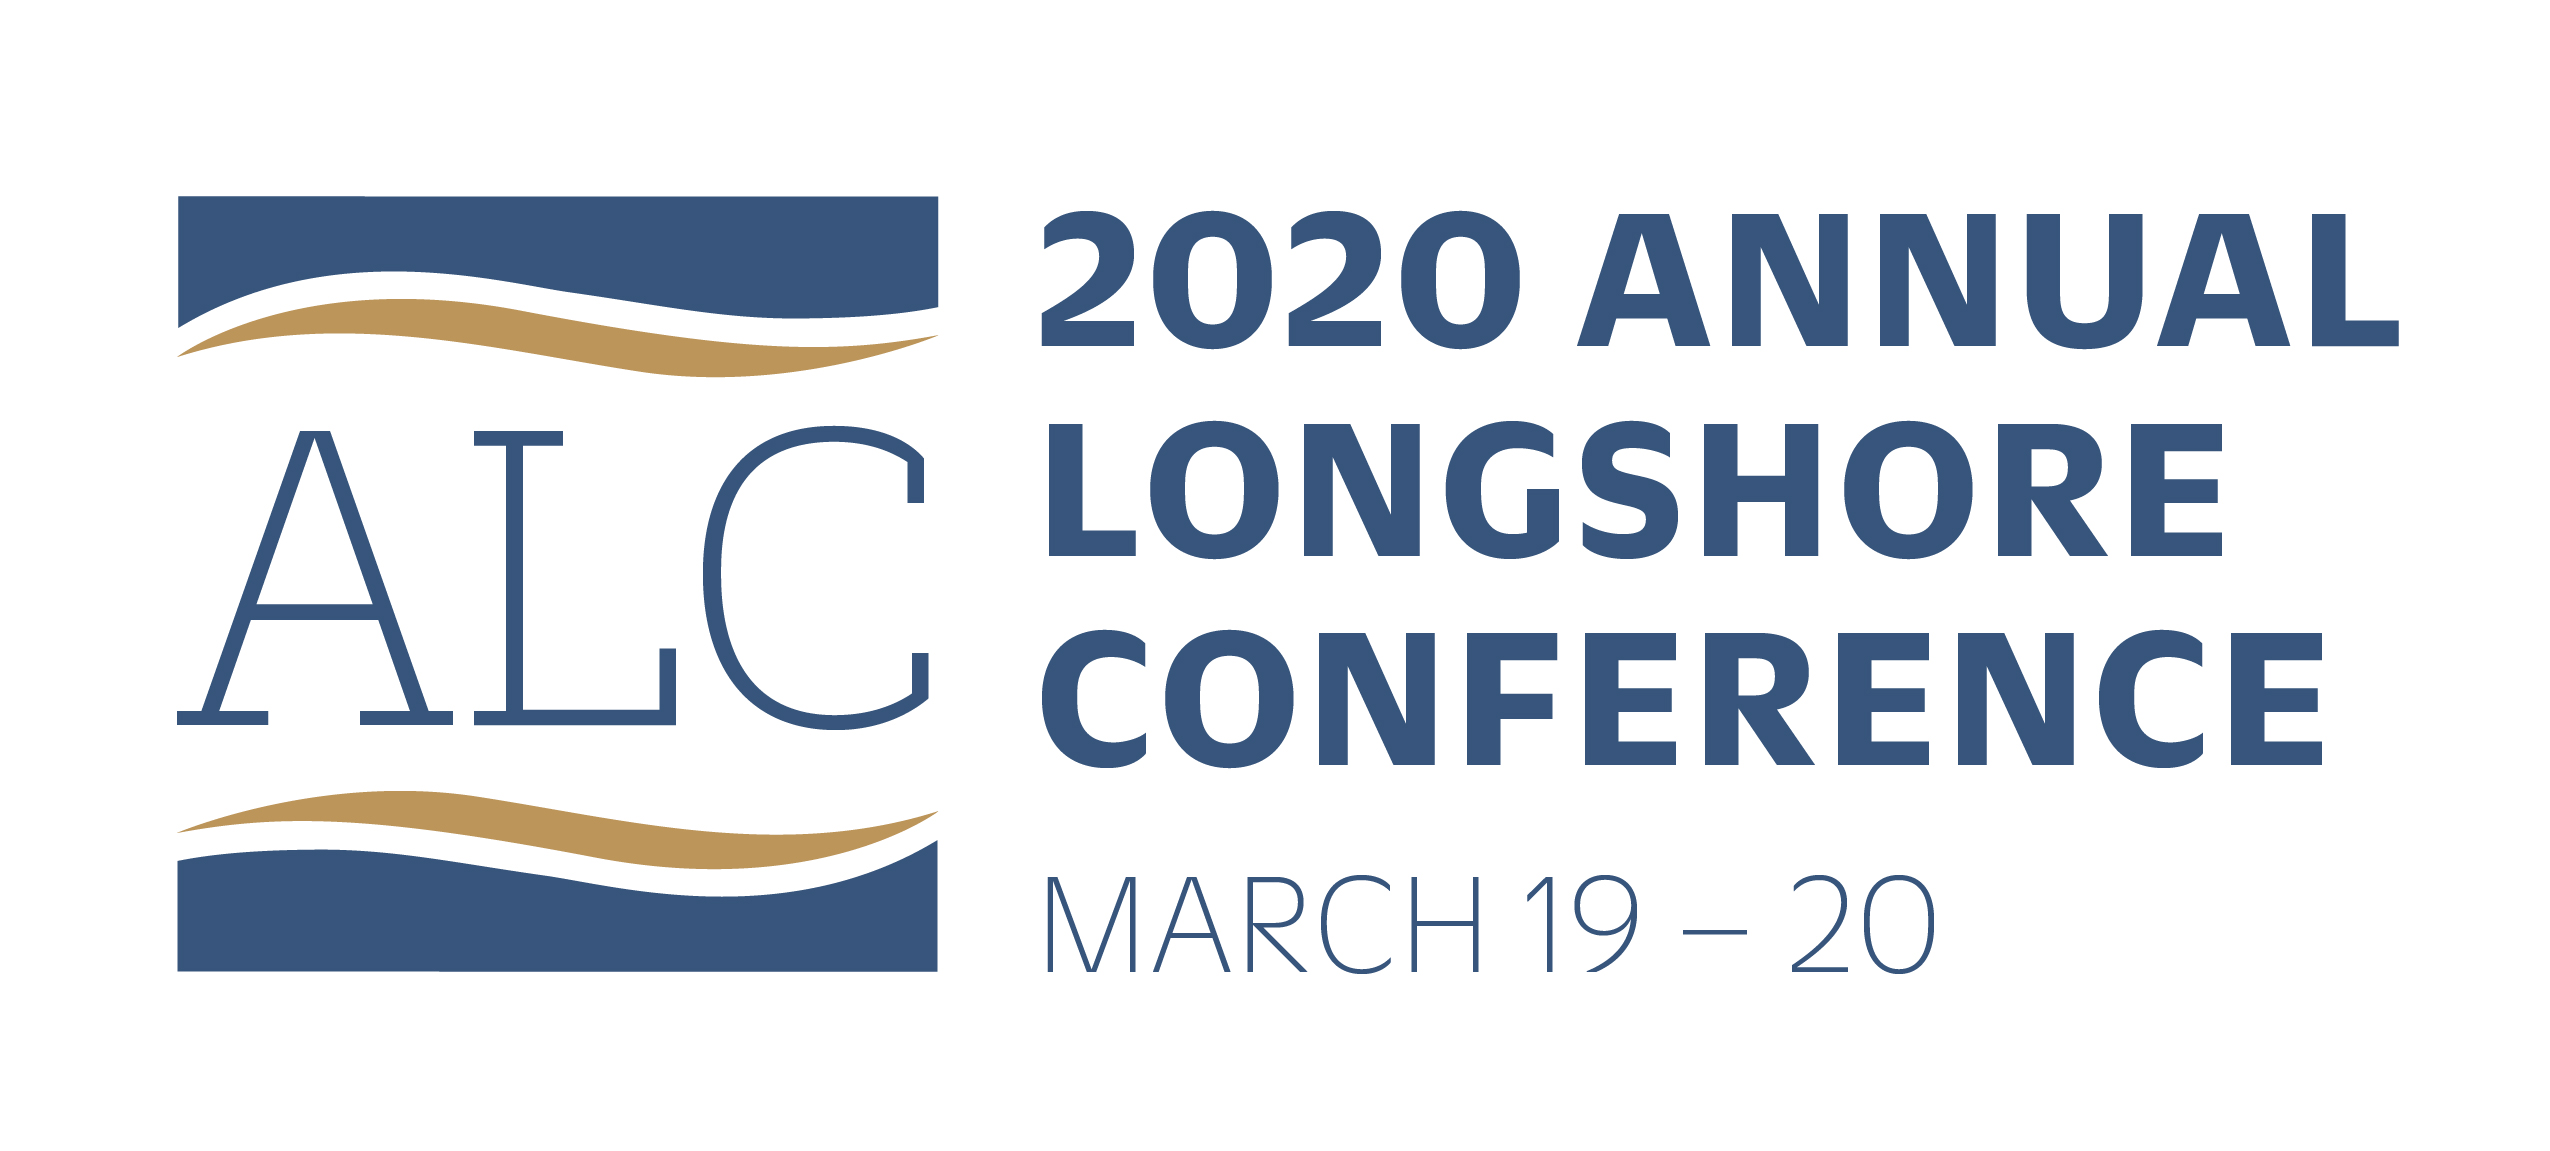 2020 Annual Longshore Conference